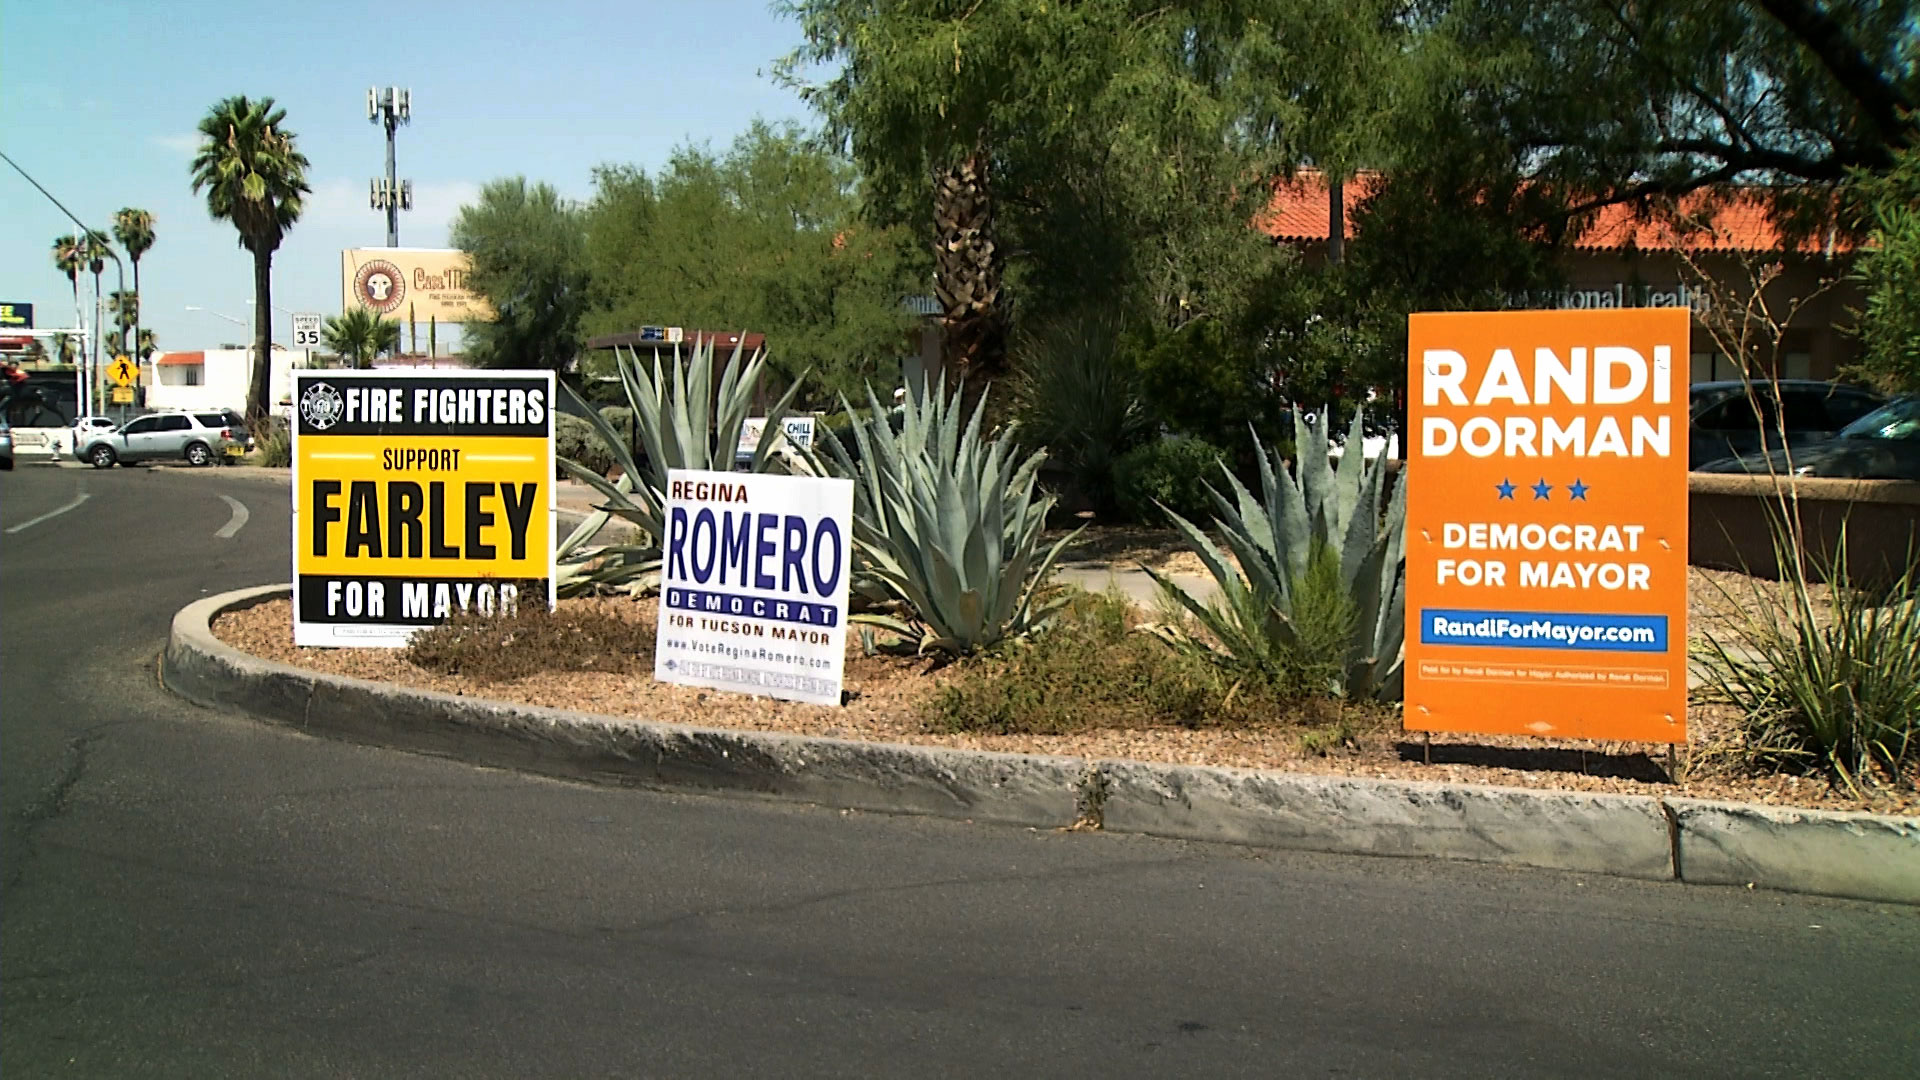 Campaign signs for the Democratic candidates running for Tucson mayor seen at a street corner on East Speedway Boulevard near North Wilmot Road.